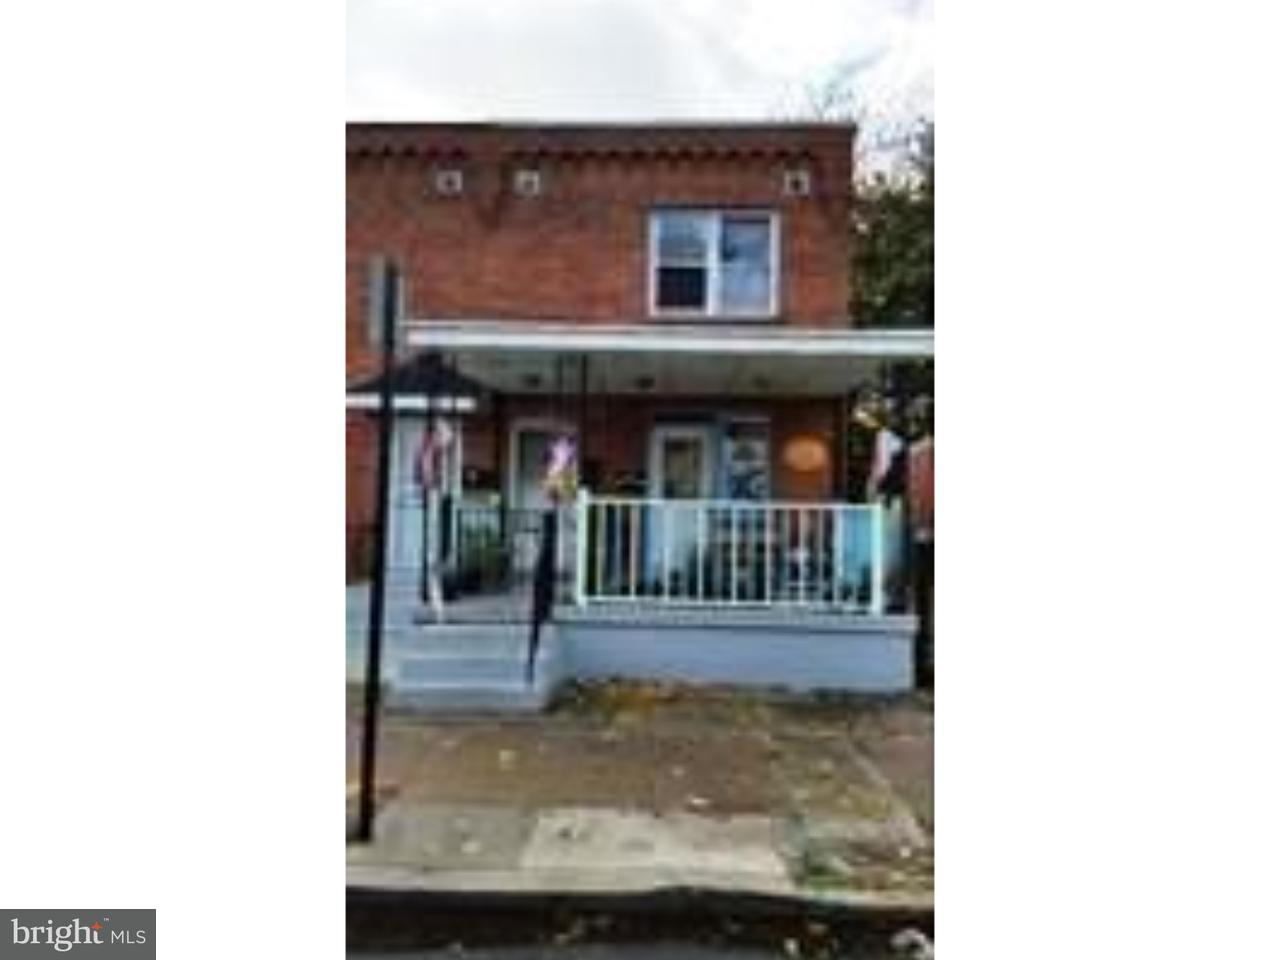 1268 CHASE Street  Camden, New Jersey 08104 United States